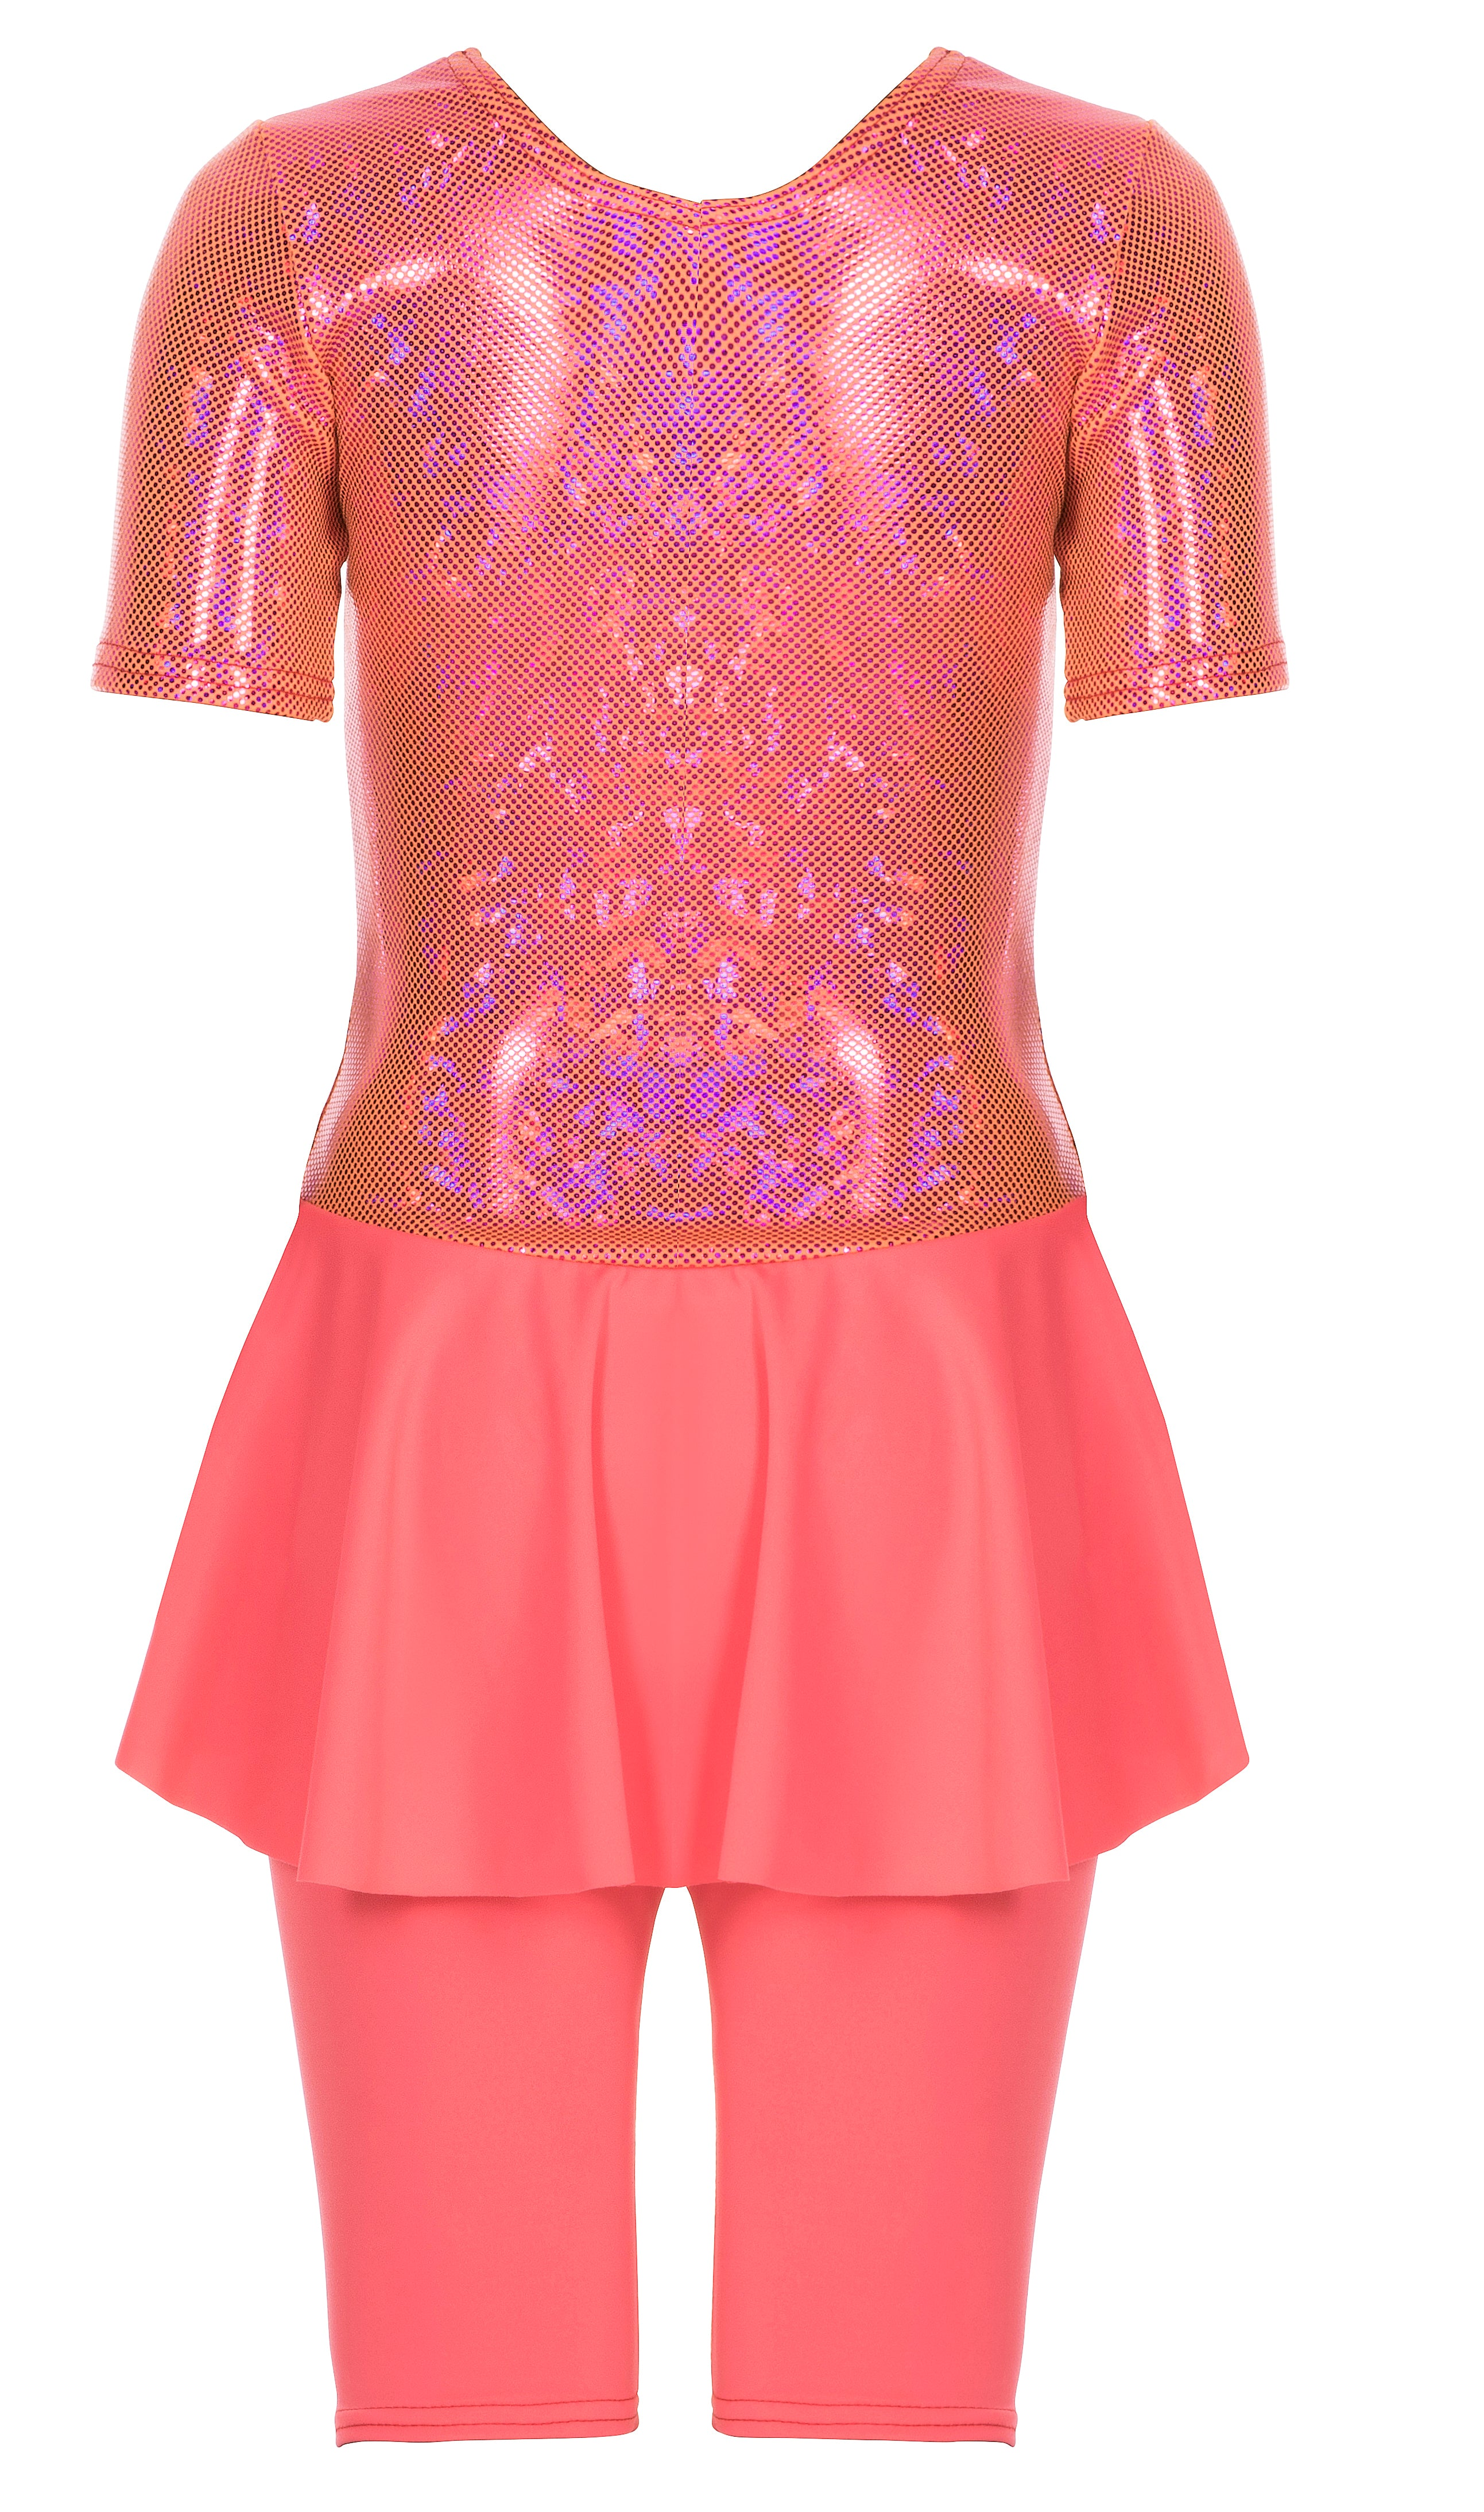 Belle Coral Girls Suit - Livy Loves